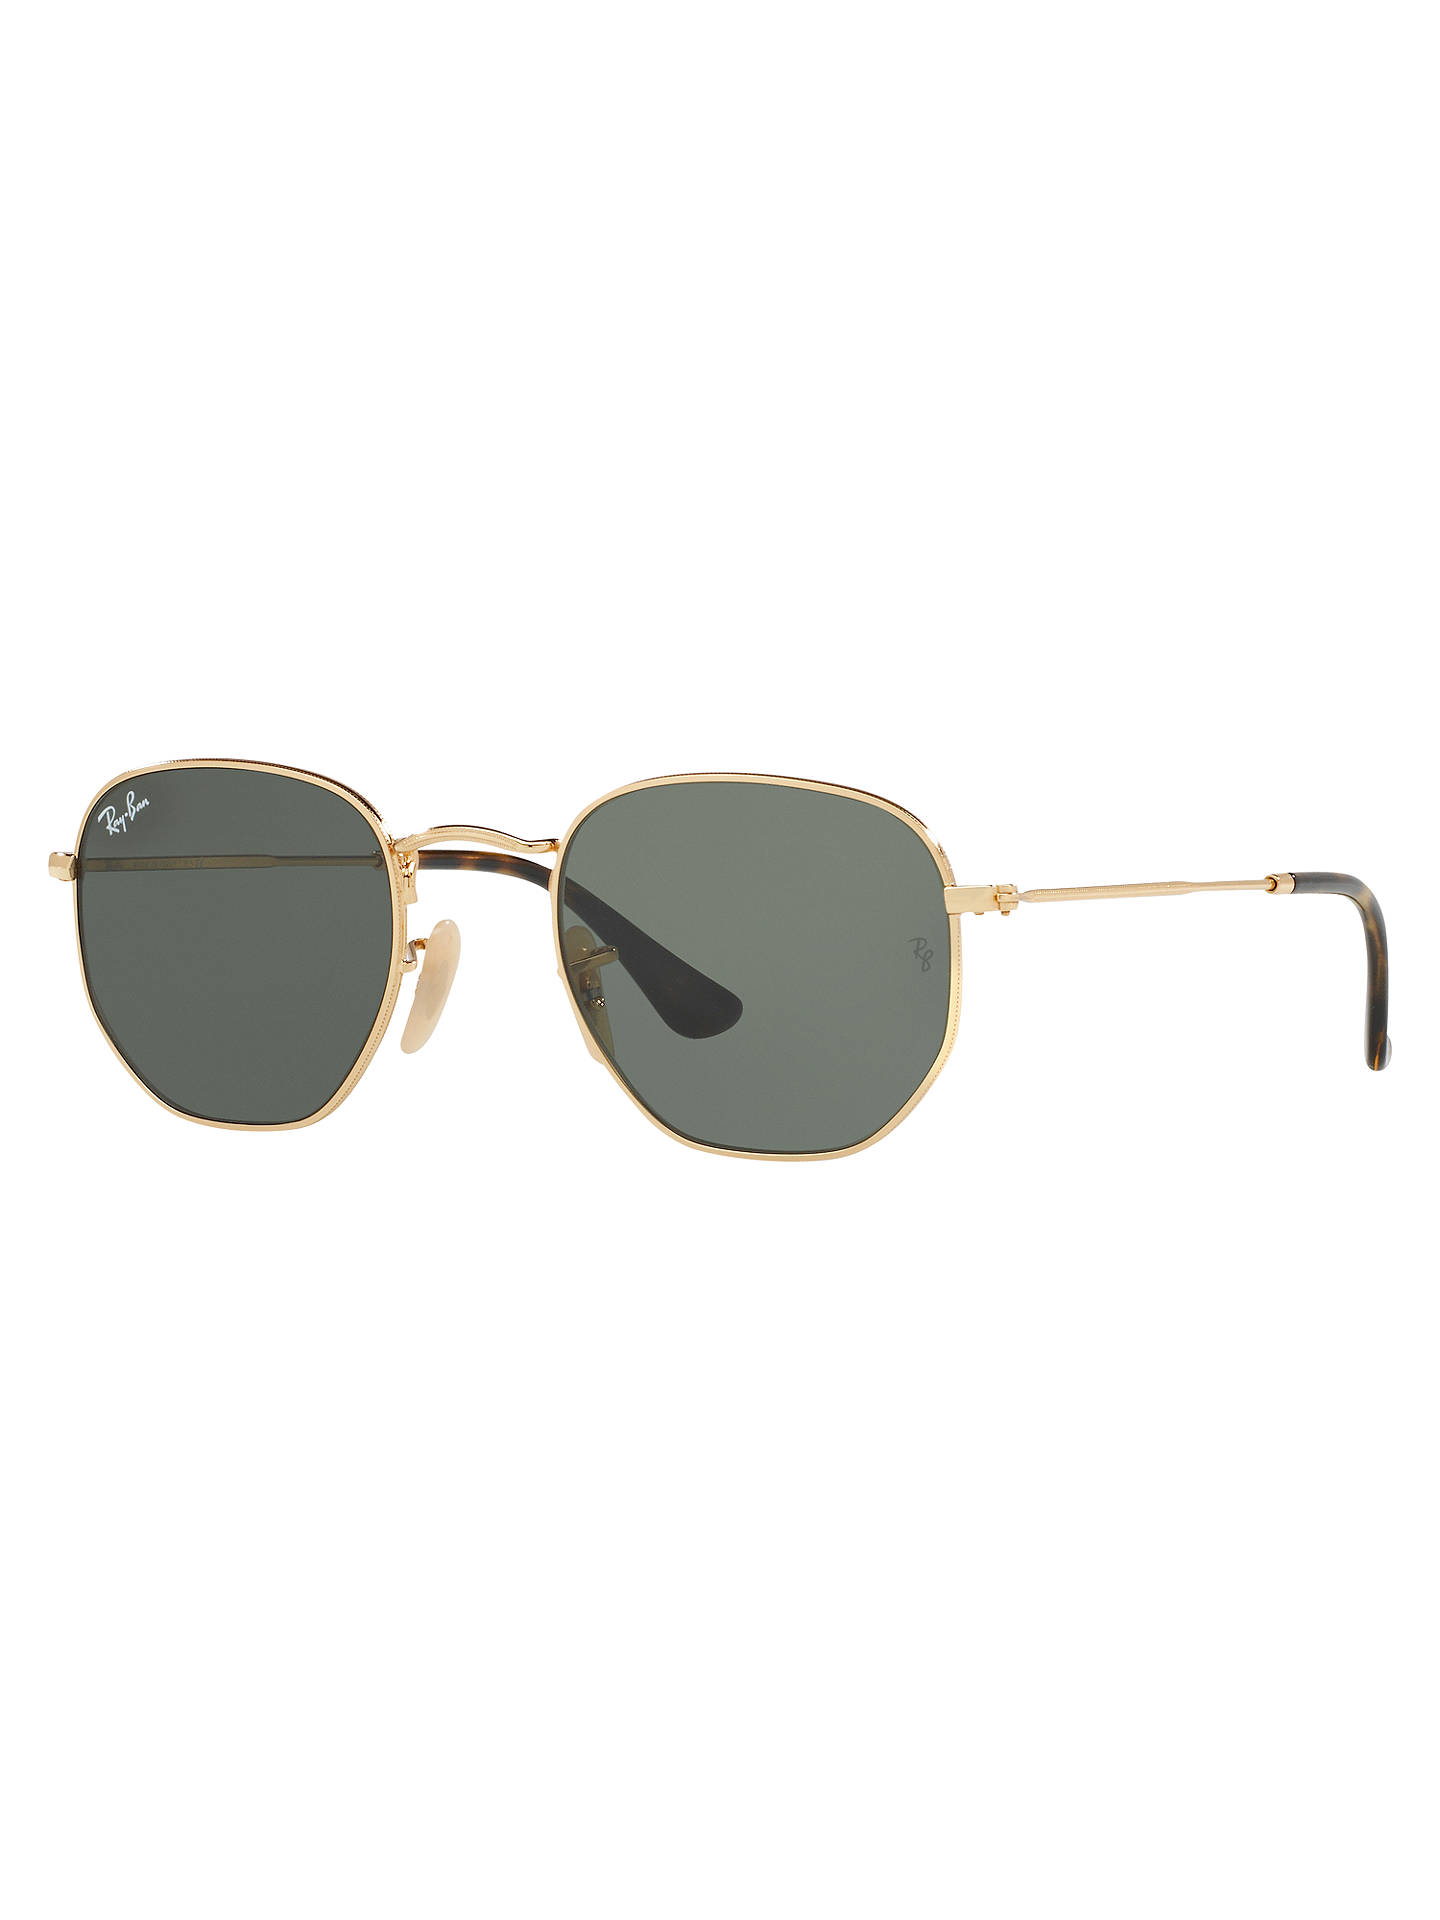 48afc4b9c8 Ray-Ban RB3548 Hexagonal Flat Lens Sunglasses at John Lewis   Partners